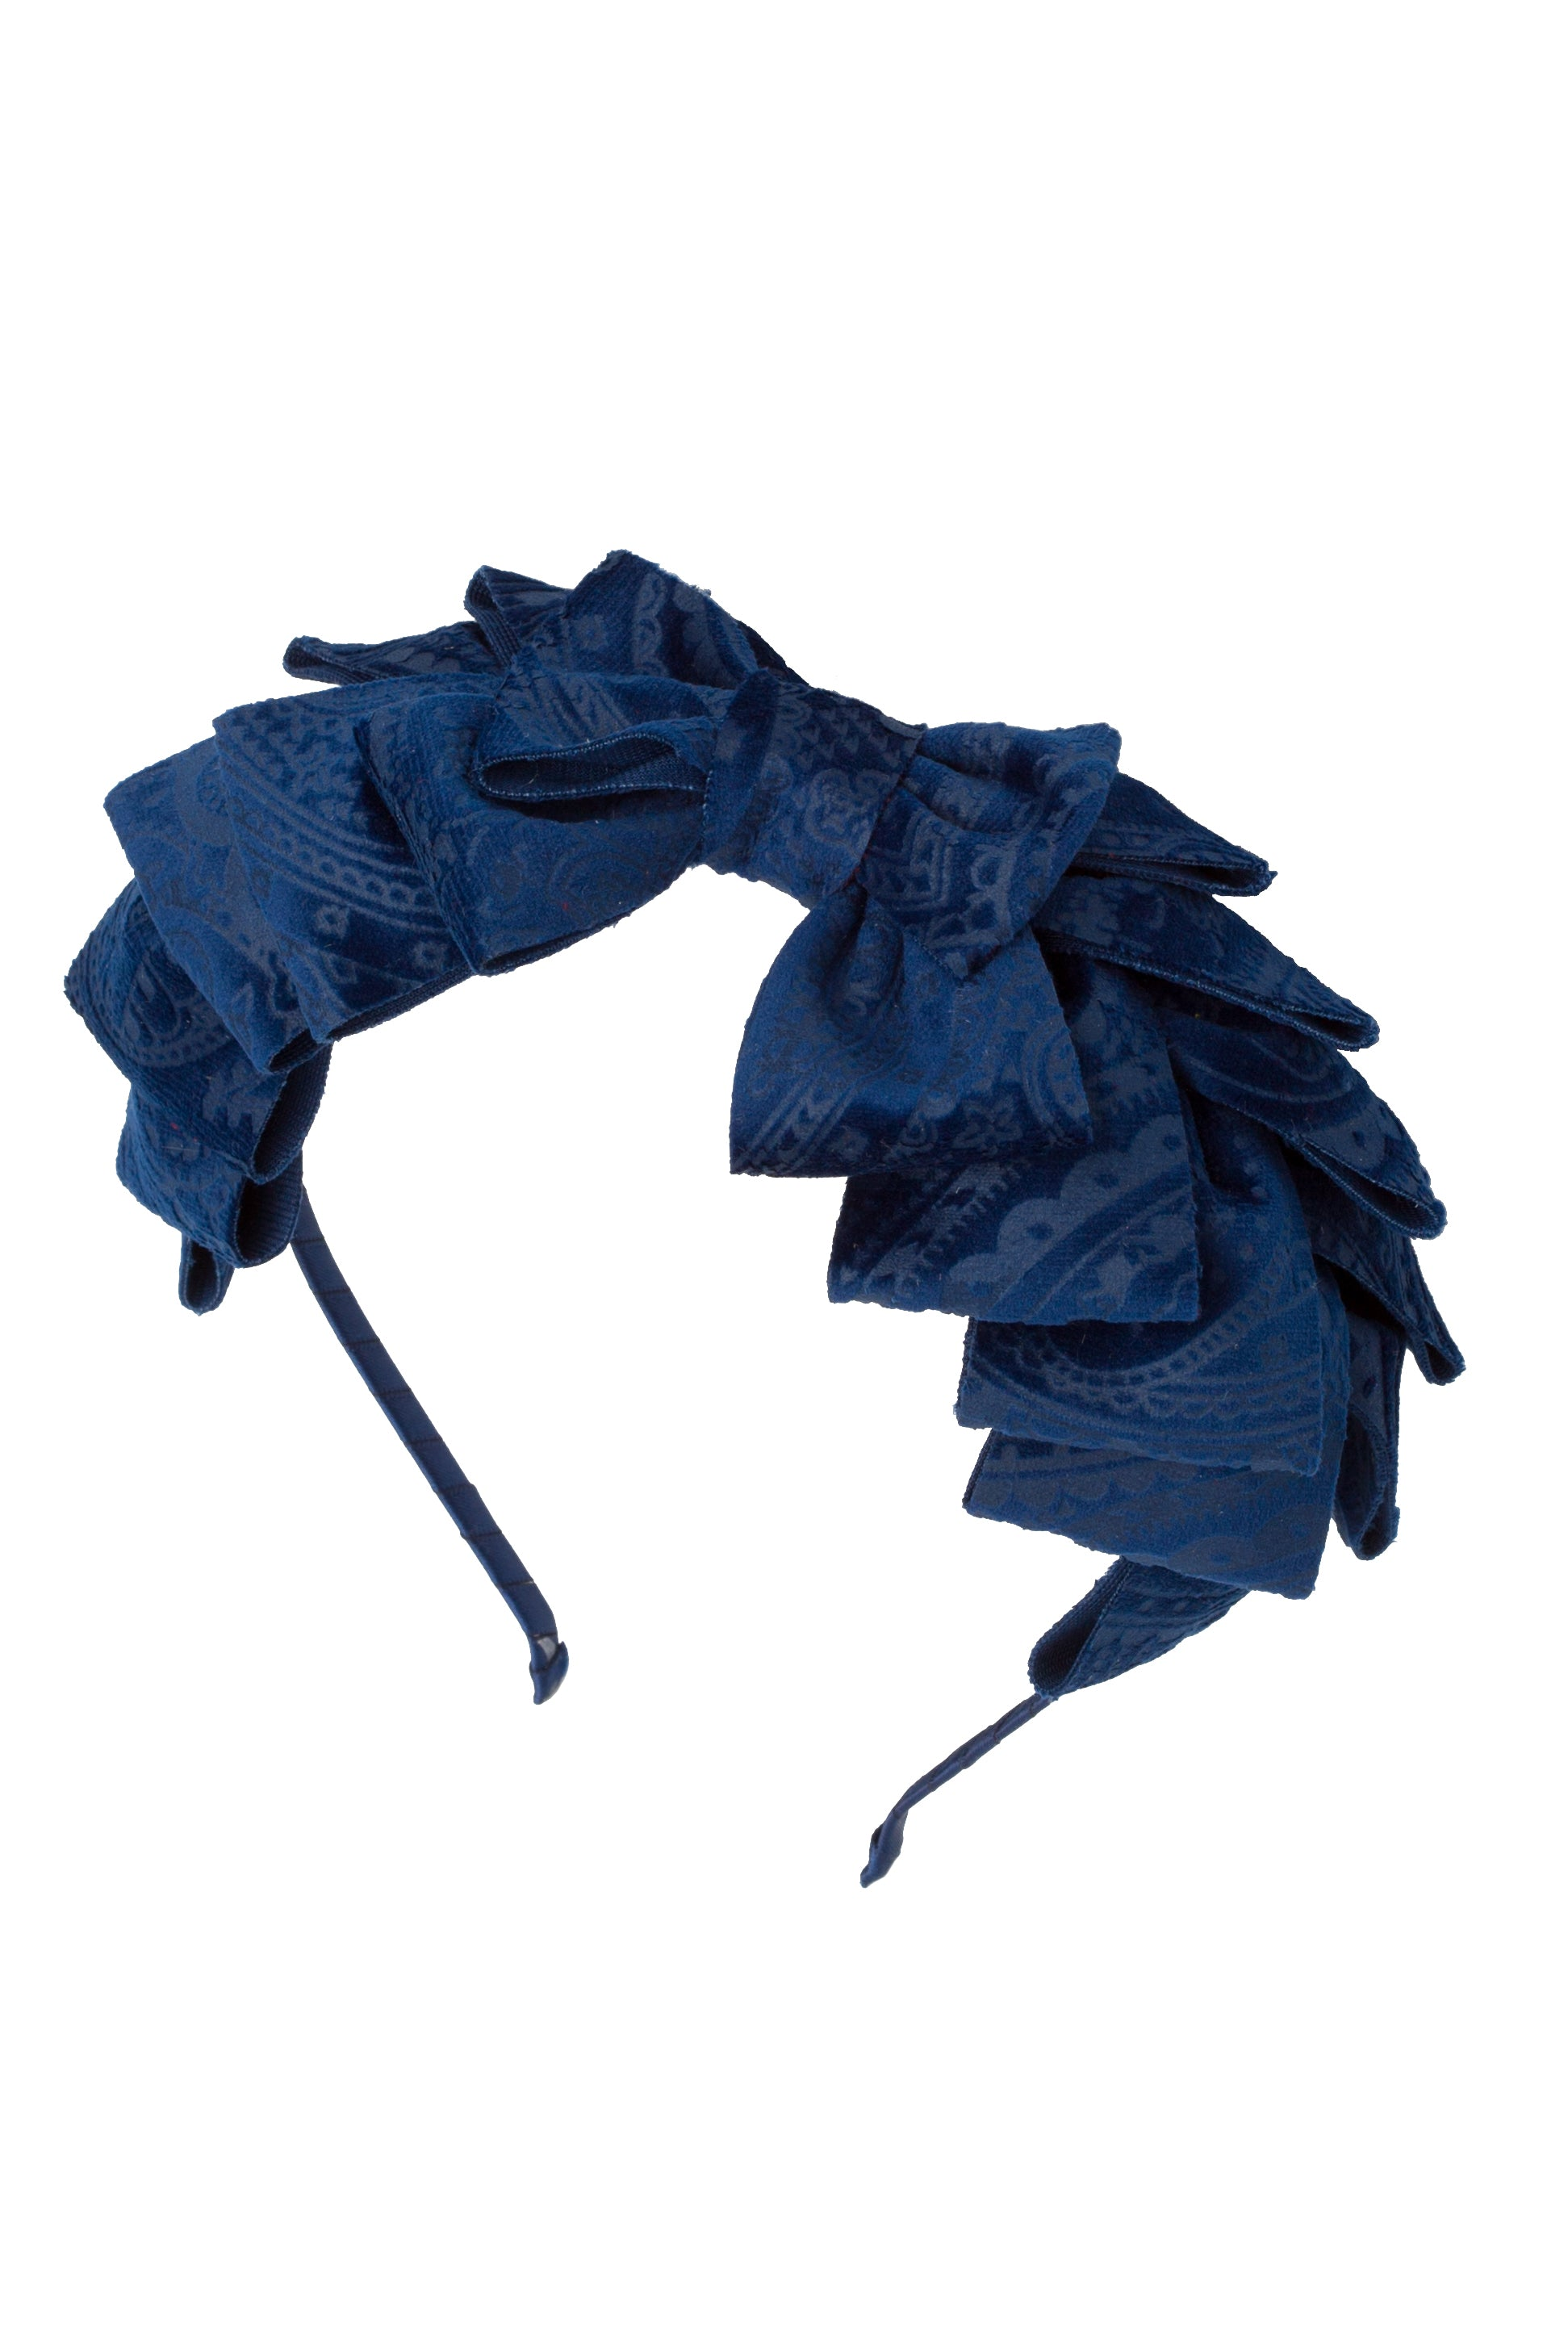 Pleated Ribbon Headband - Navy Paisley Suede - PROJECT 6, modest fashion